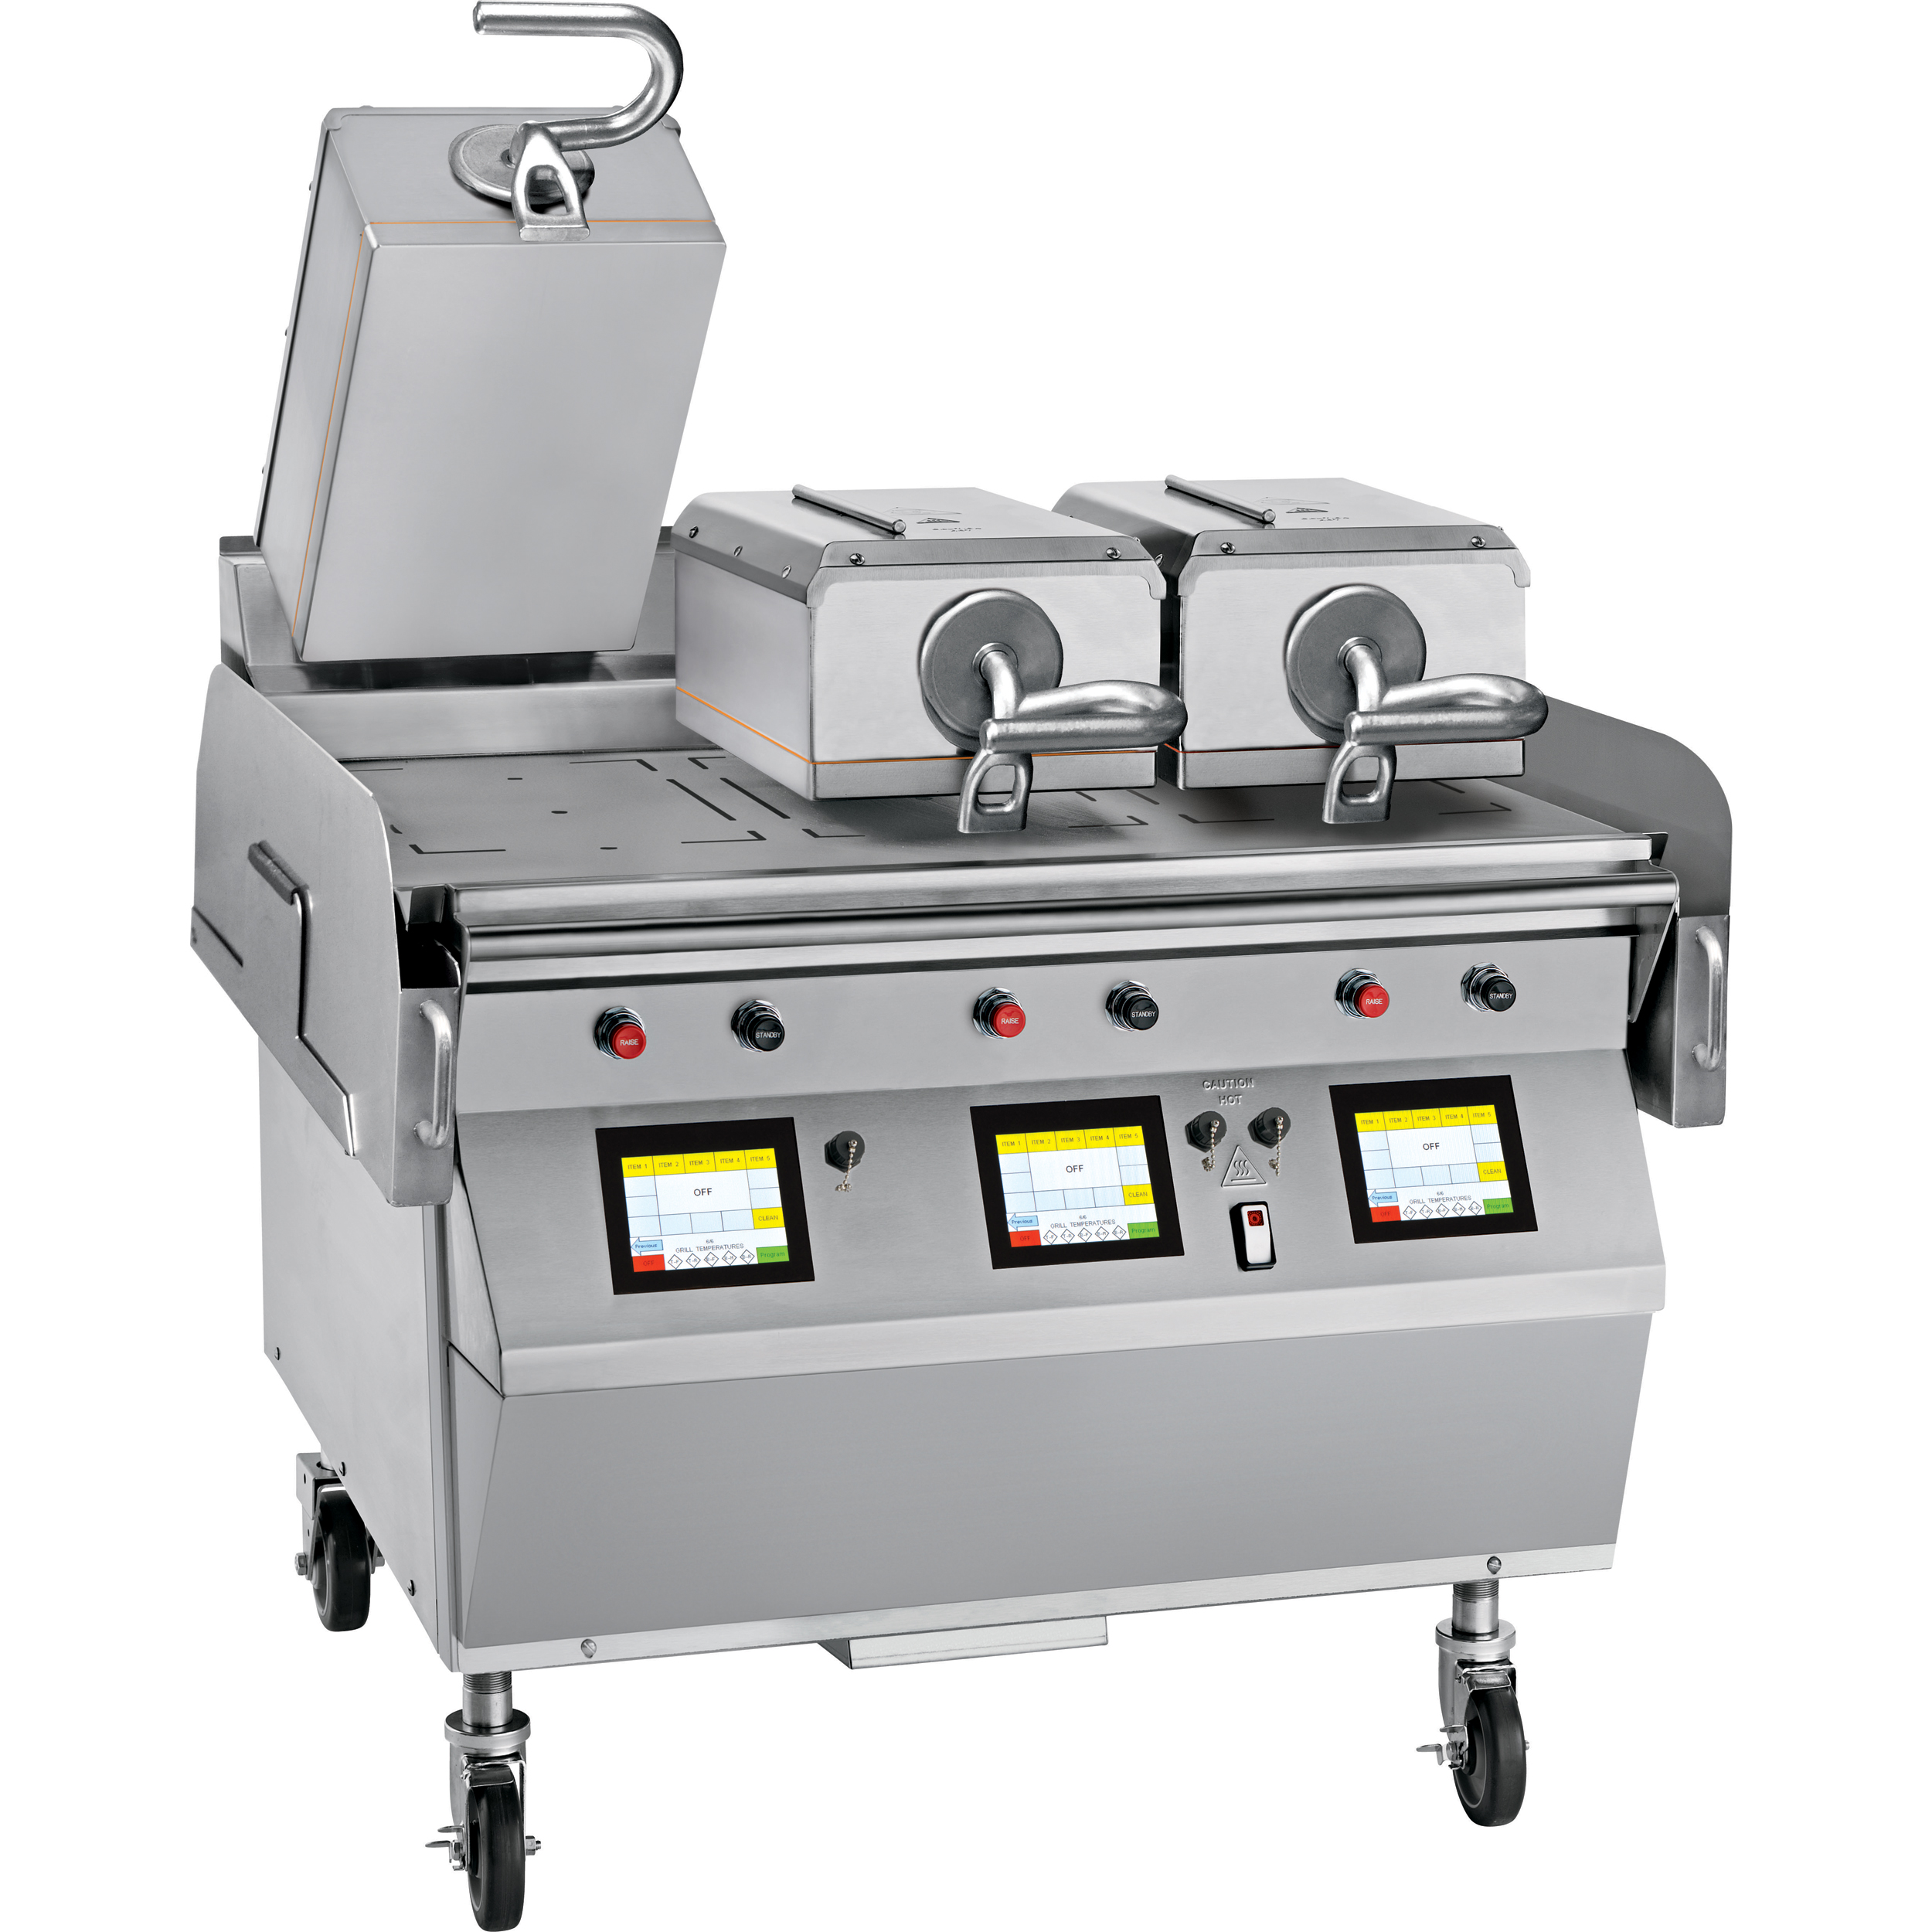 """Model L810   Electric 3 Platen 36"""" Grill  One touch menu selection automatically provides accurate TIME, TEMPERATURE and GAP settings for every product.  KEY SPECIFICATIONS:   Lower Cooking Surface Heat Source : Electric   Upper Platen Heat Source : Electric   Cooking Surface Dimensions : 36""""   Installation : Floor Model   Upper Platens : 3"""